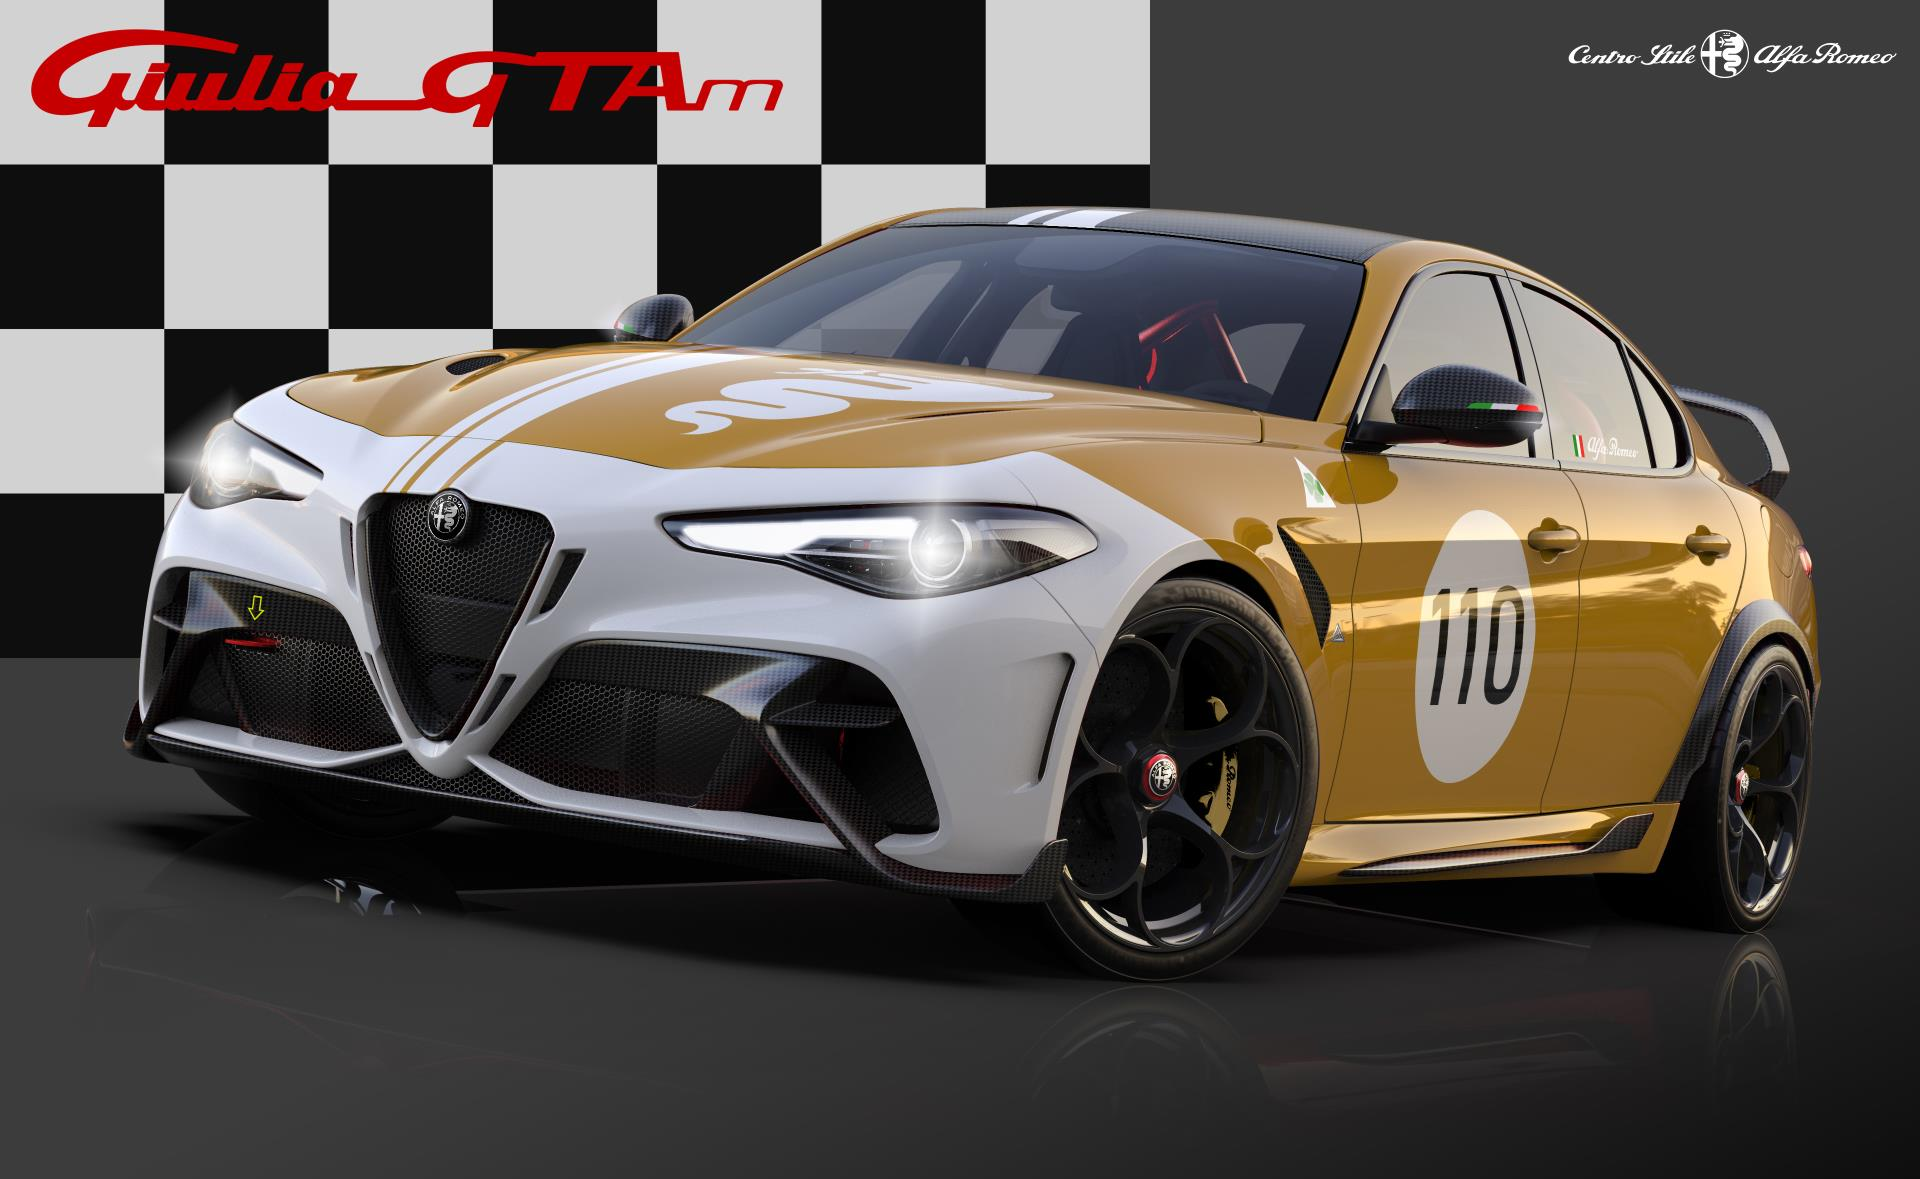 Alfa Romeo Giulia GTA dedicated Yellow Livery